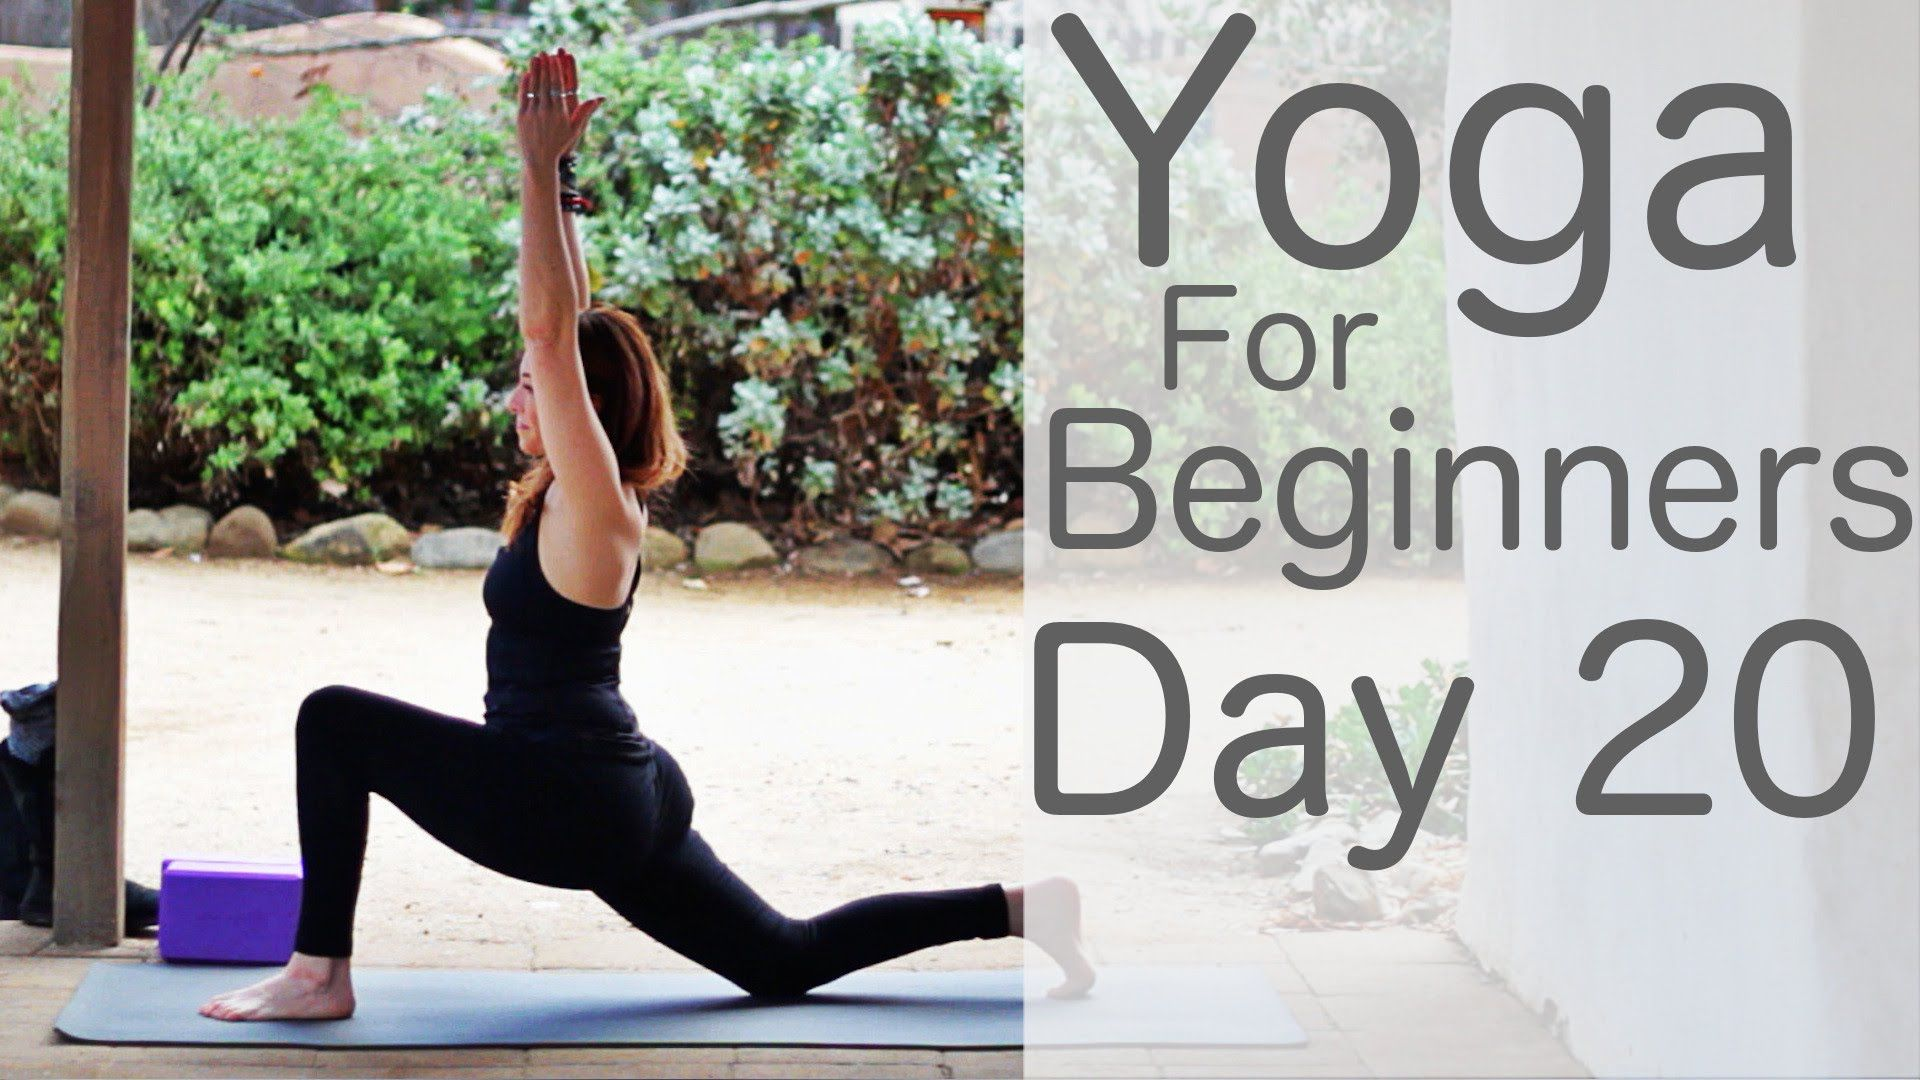 Yoga For Beginners 30 Day Challenge Day 20 with Lesley Fightmaster